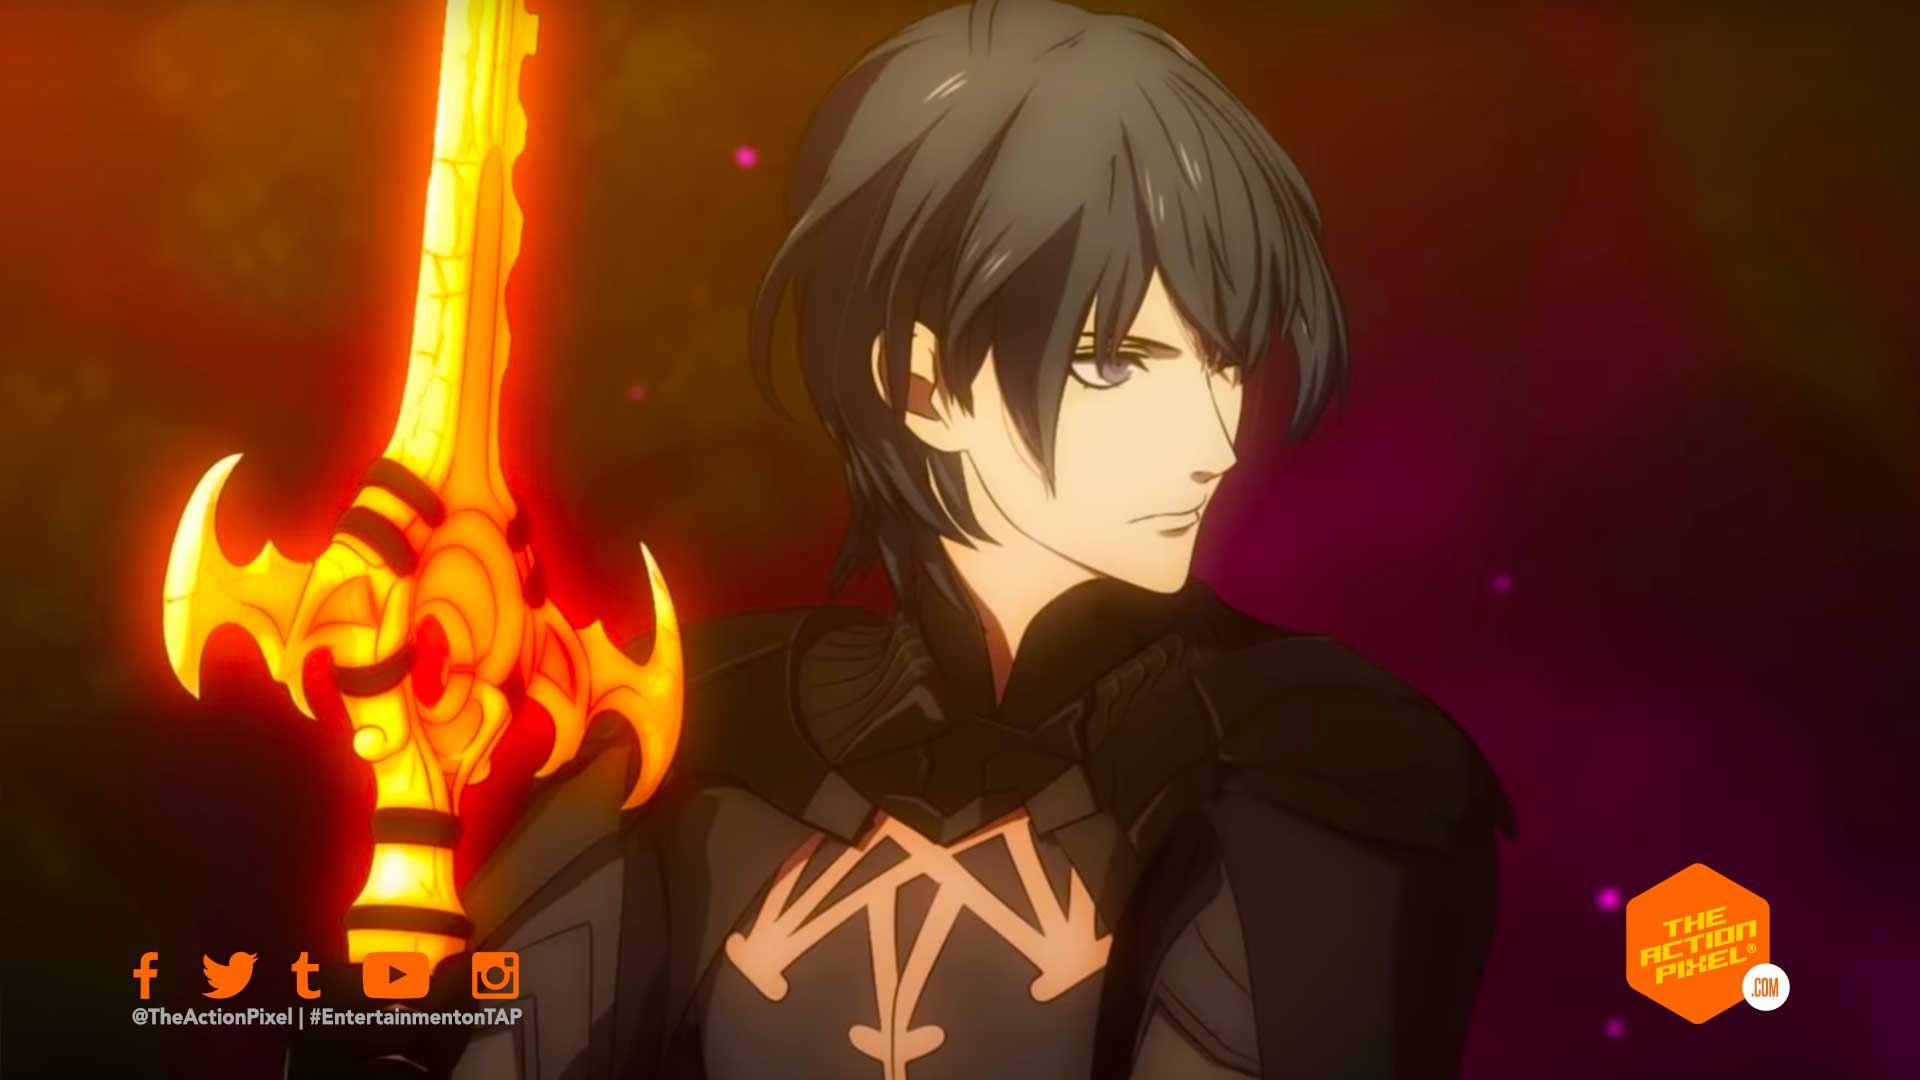 byleth, super smash bros., super smash bros ultimate, fire emblem, super smash bros., the action pixel, entertainment on tap,super smash bros ultimate, super smash bros dlc character, featured, entertainment on tap, the action pixel